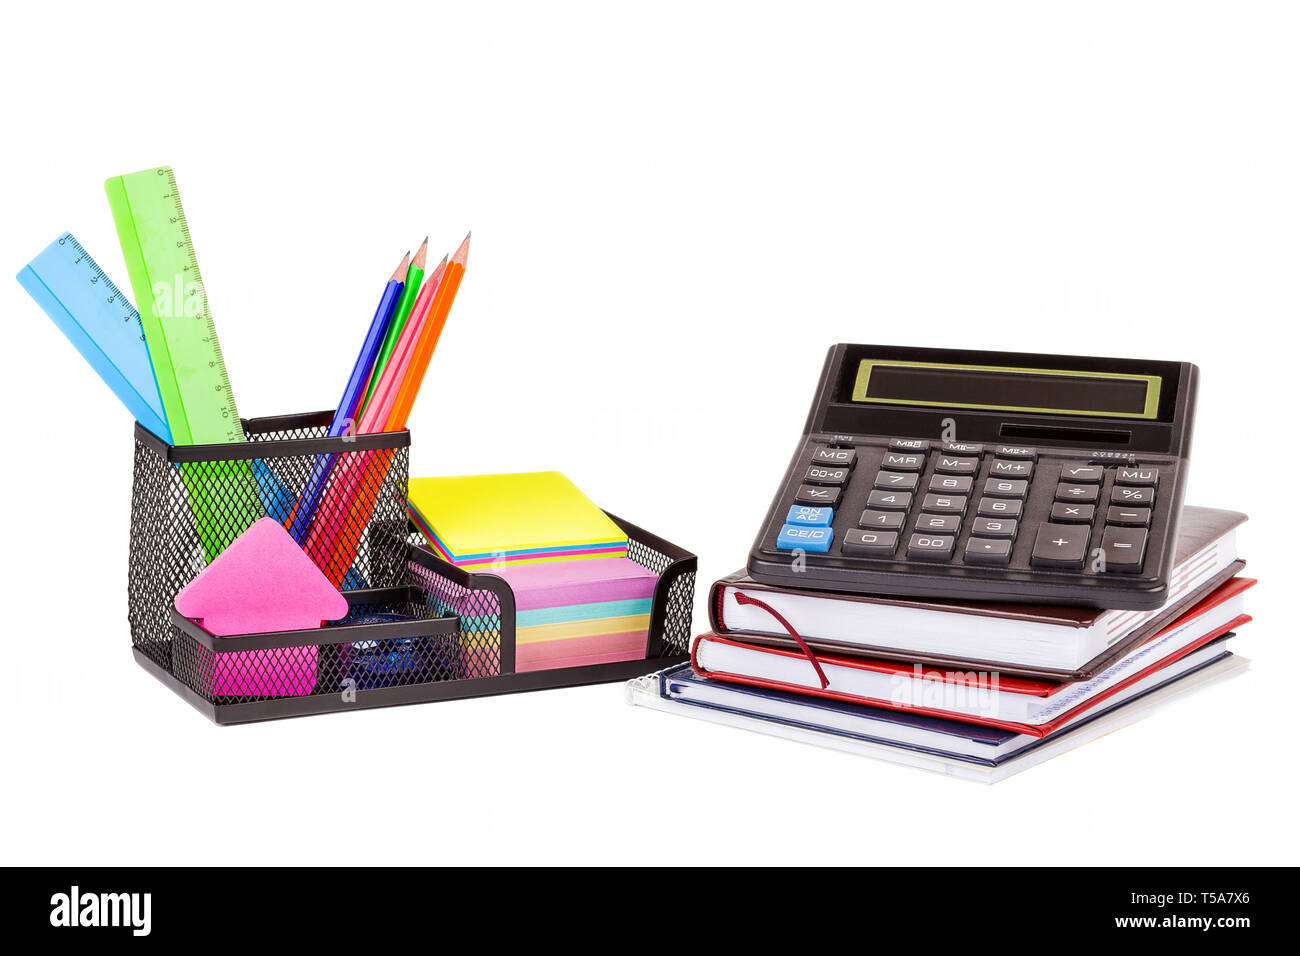 Stationery isolated on white. Notebooks, markers, pencils, rulers, stickers, stapler, calculator - Stock Image